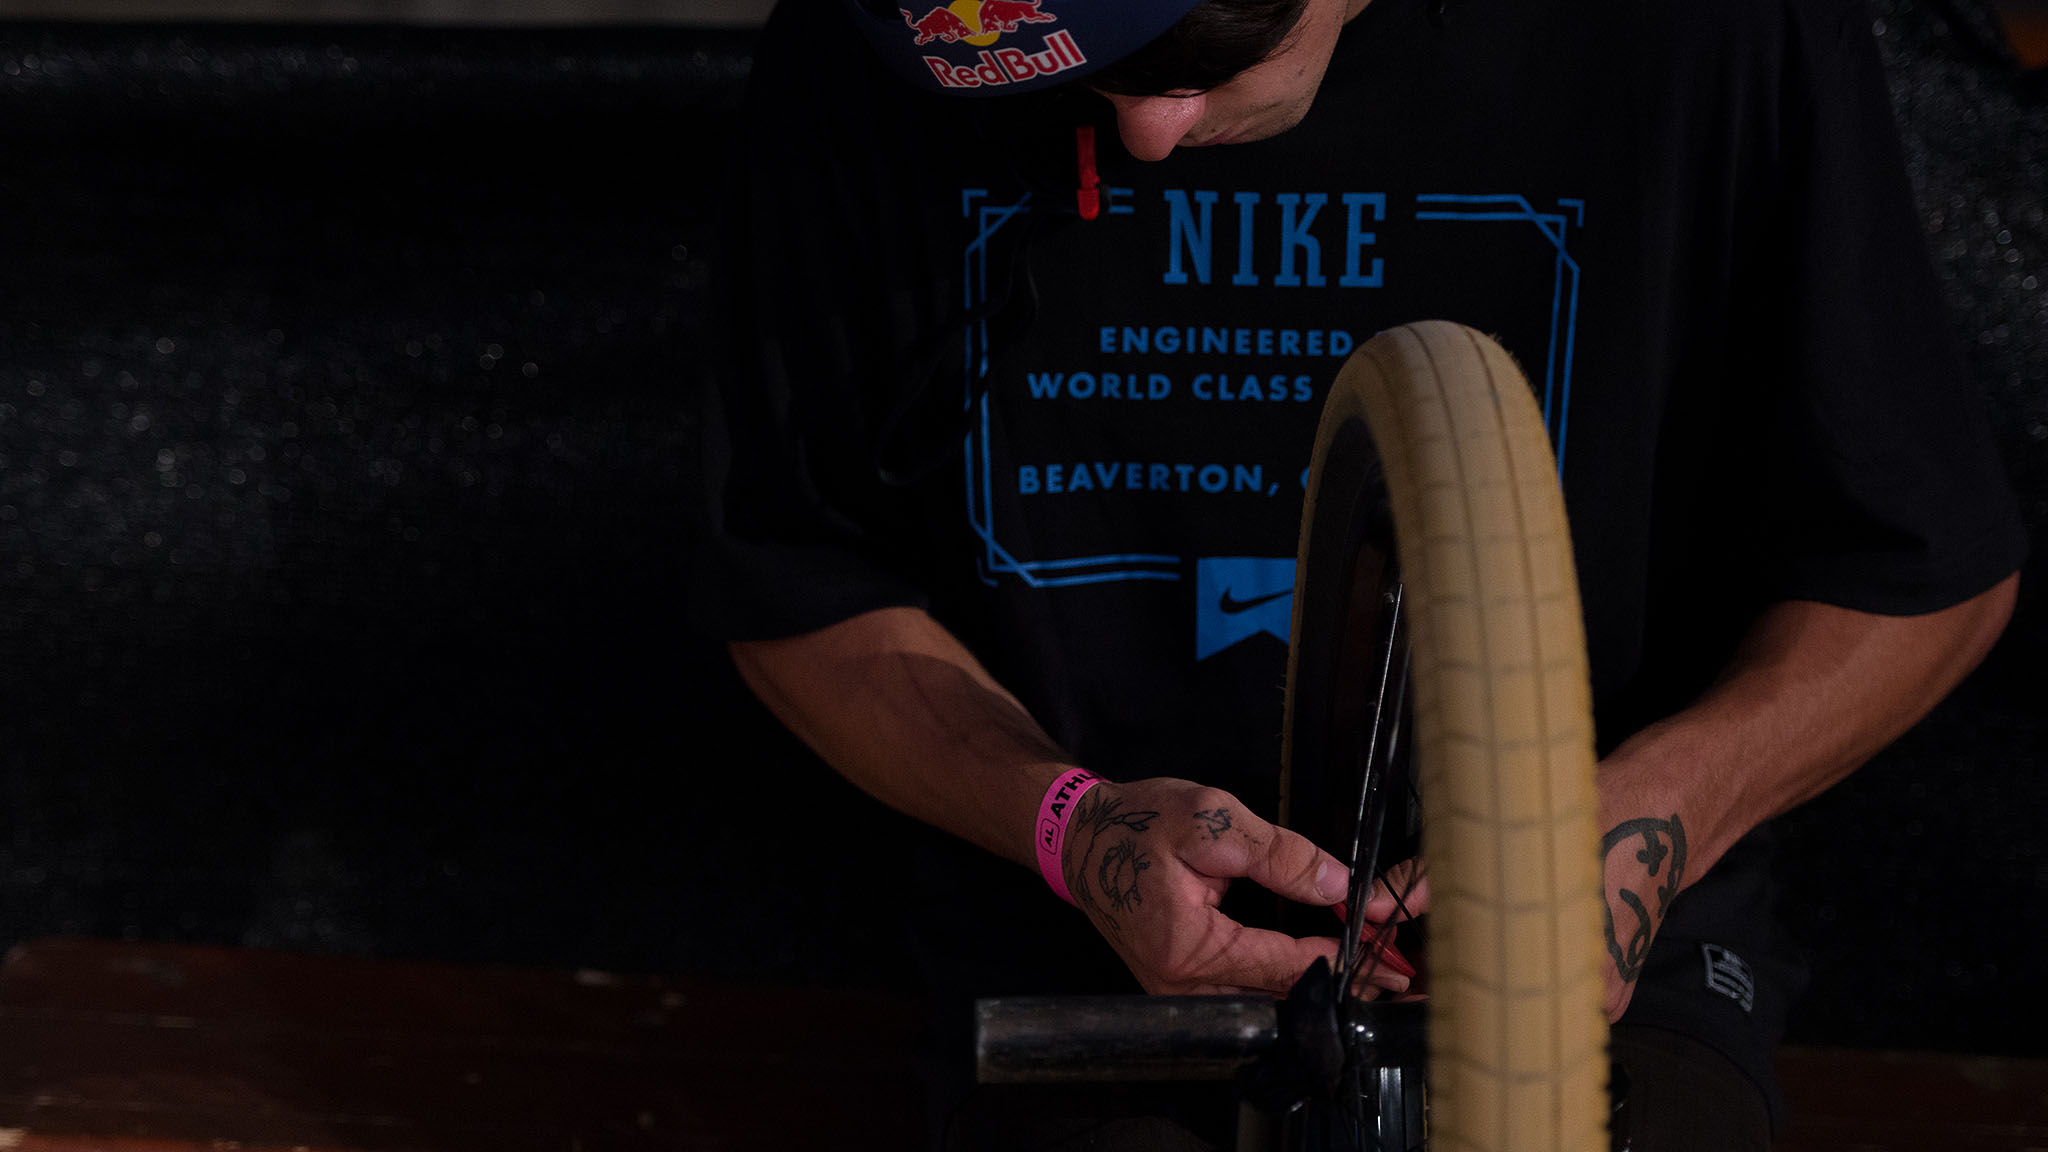 Glasgow, Scotland's Kriss Kyle lives inside one of the few indoor skateparks in Scotland and has a perfect BMX bowl to ride right outside of his bedroom. Kyle was invited to X Games Munich to compete in BMX Park, and between bike-maintenance sessions he was able to decipher original park lines in preparation for Saturday's competition.